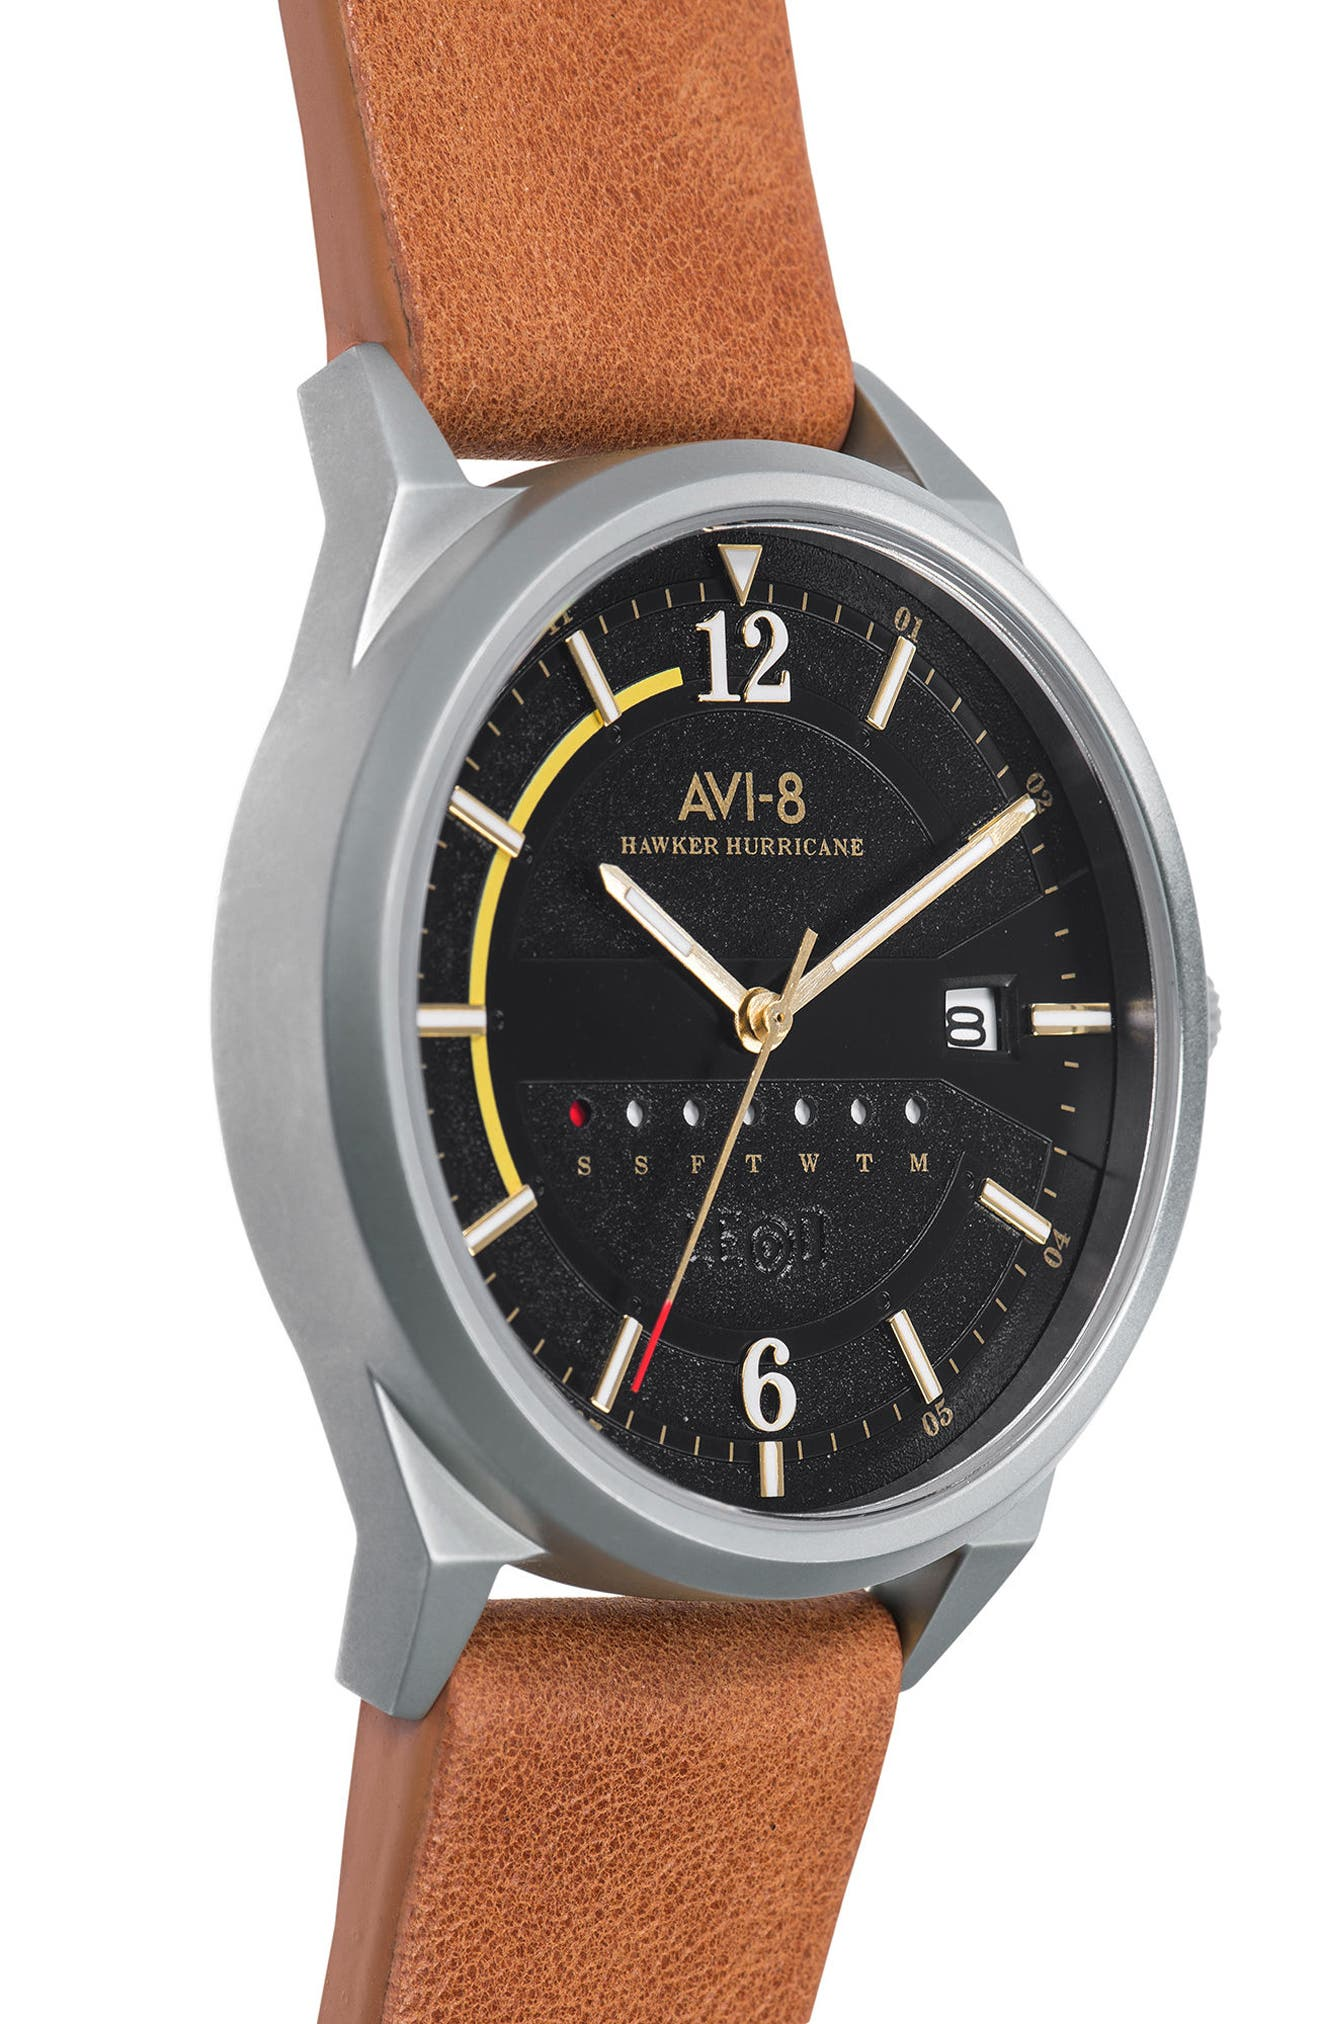 AVI-8,                             Hawker Hurricane Leather Strap Watch, 38mm,                             Alternate thumbnail 3, color,                             200